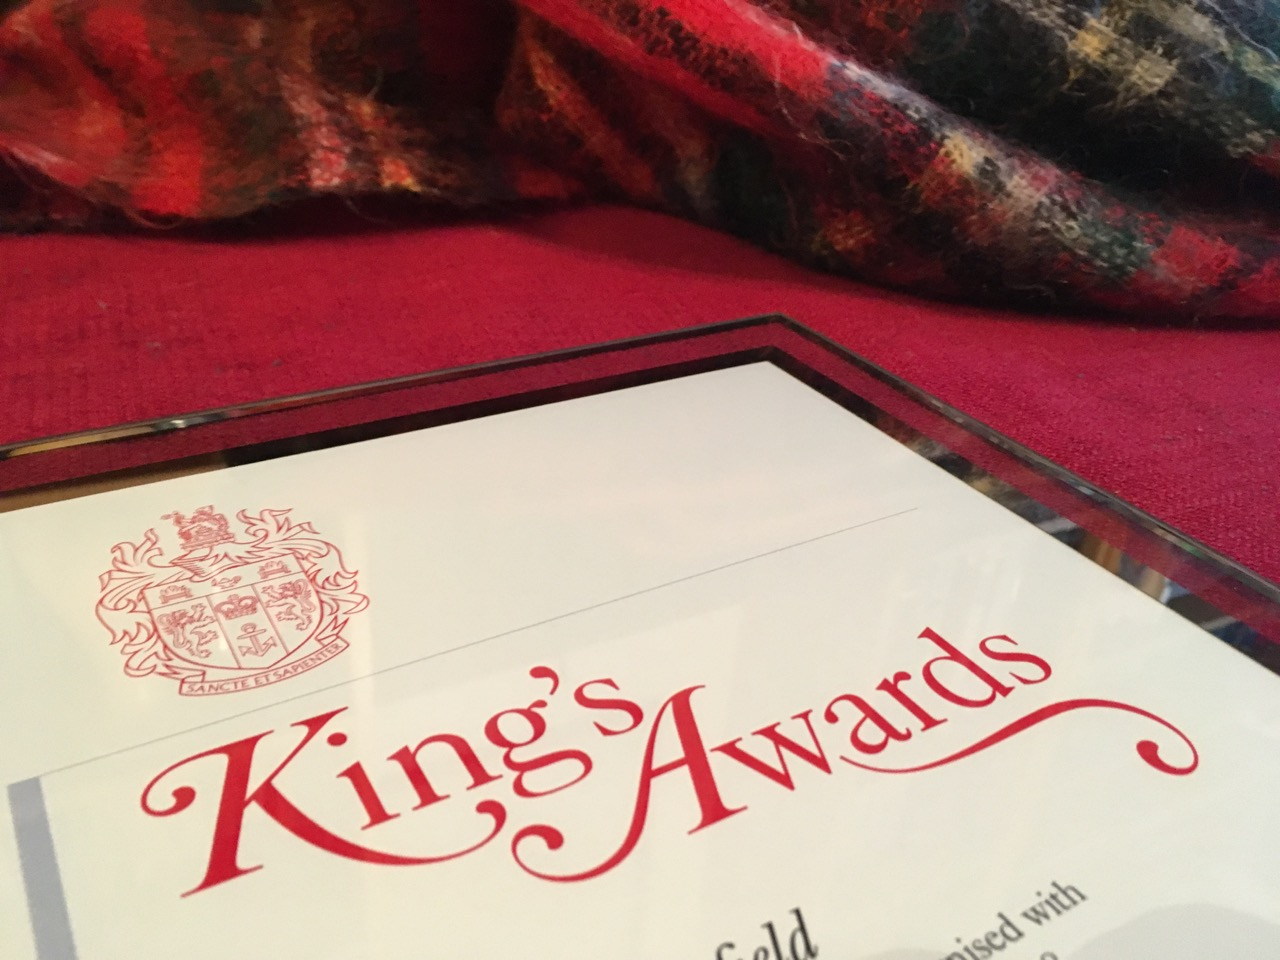 King's Awards